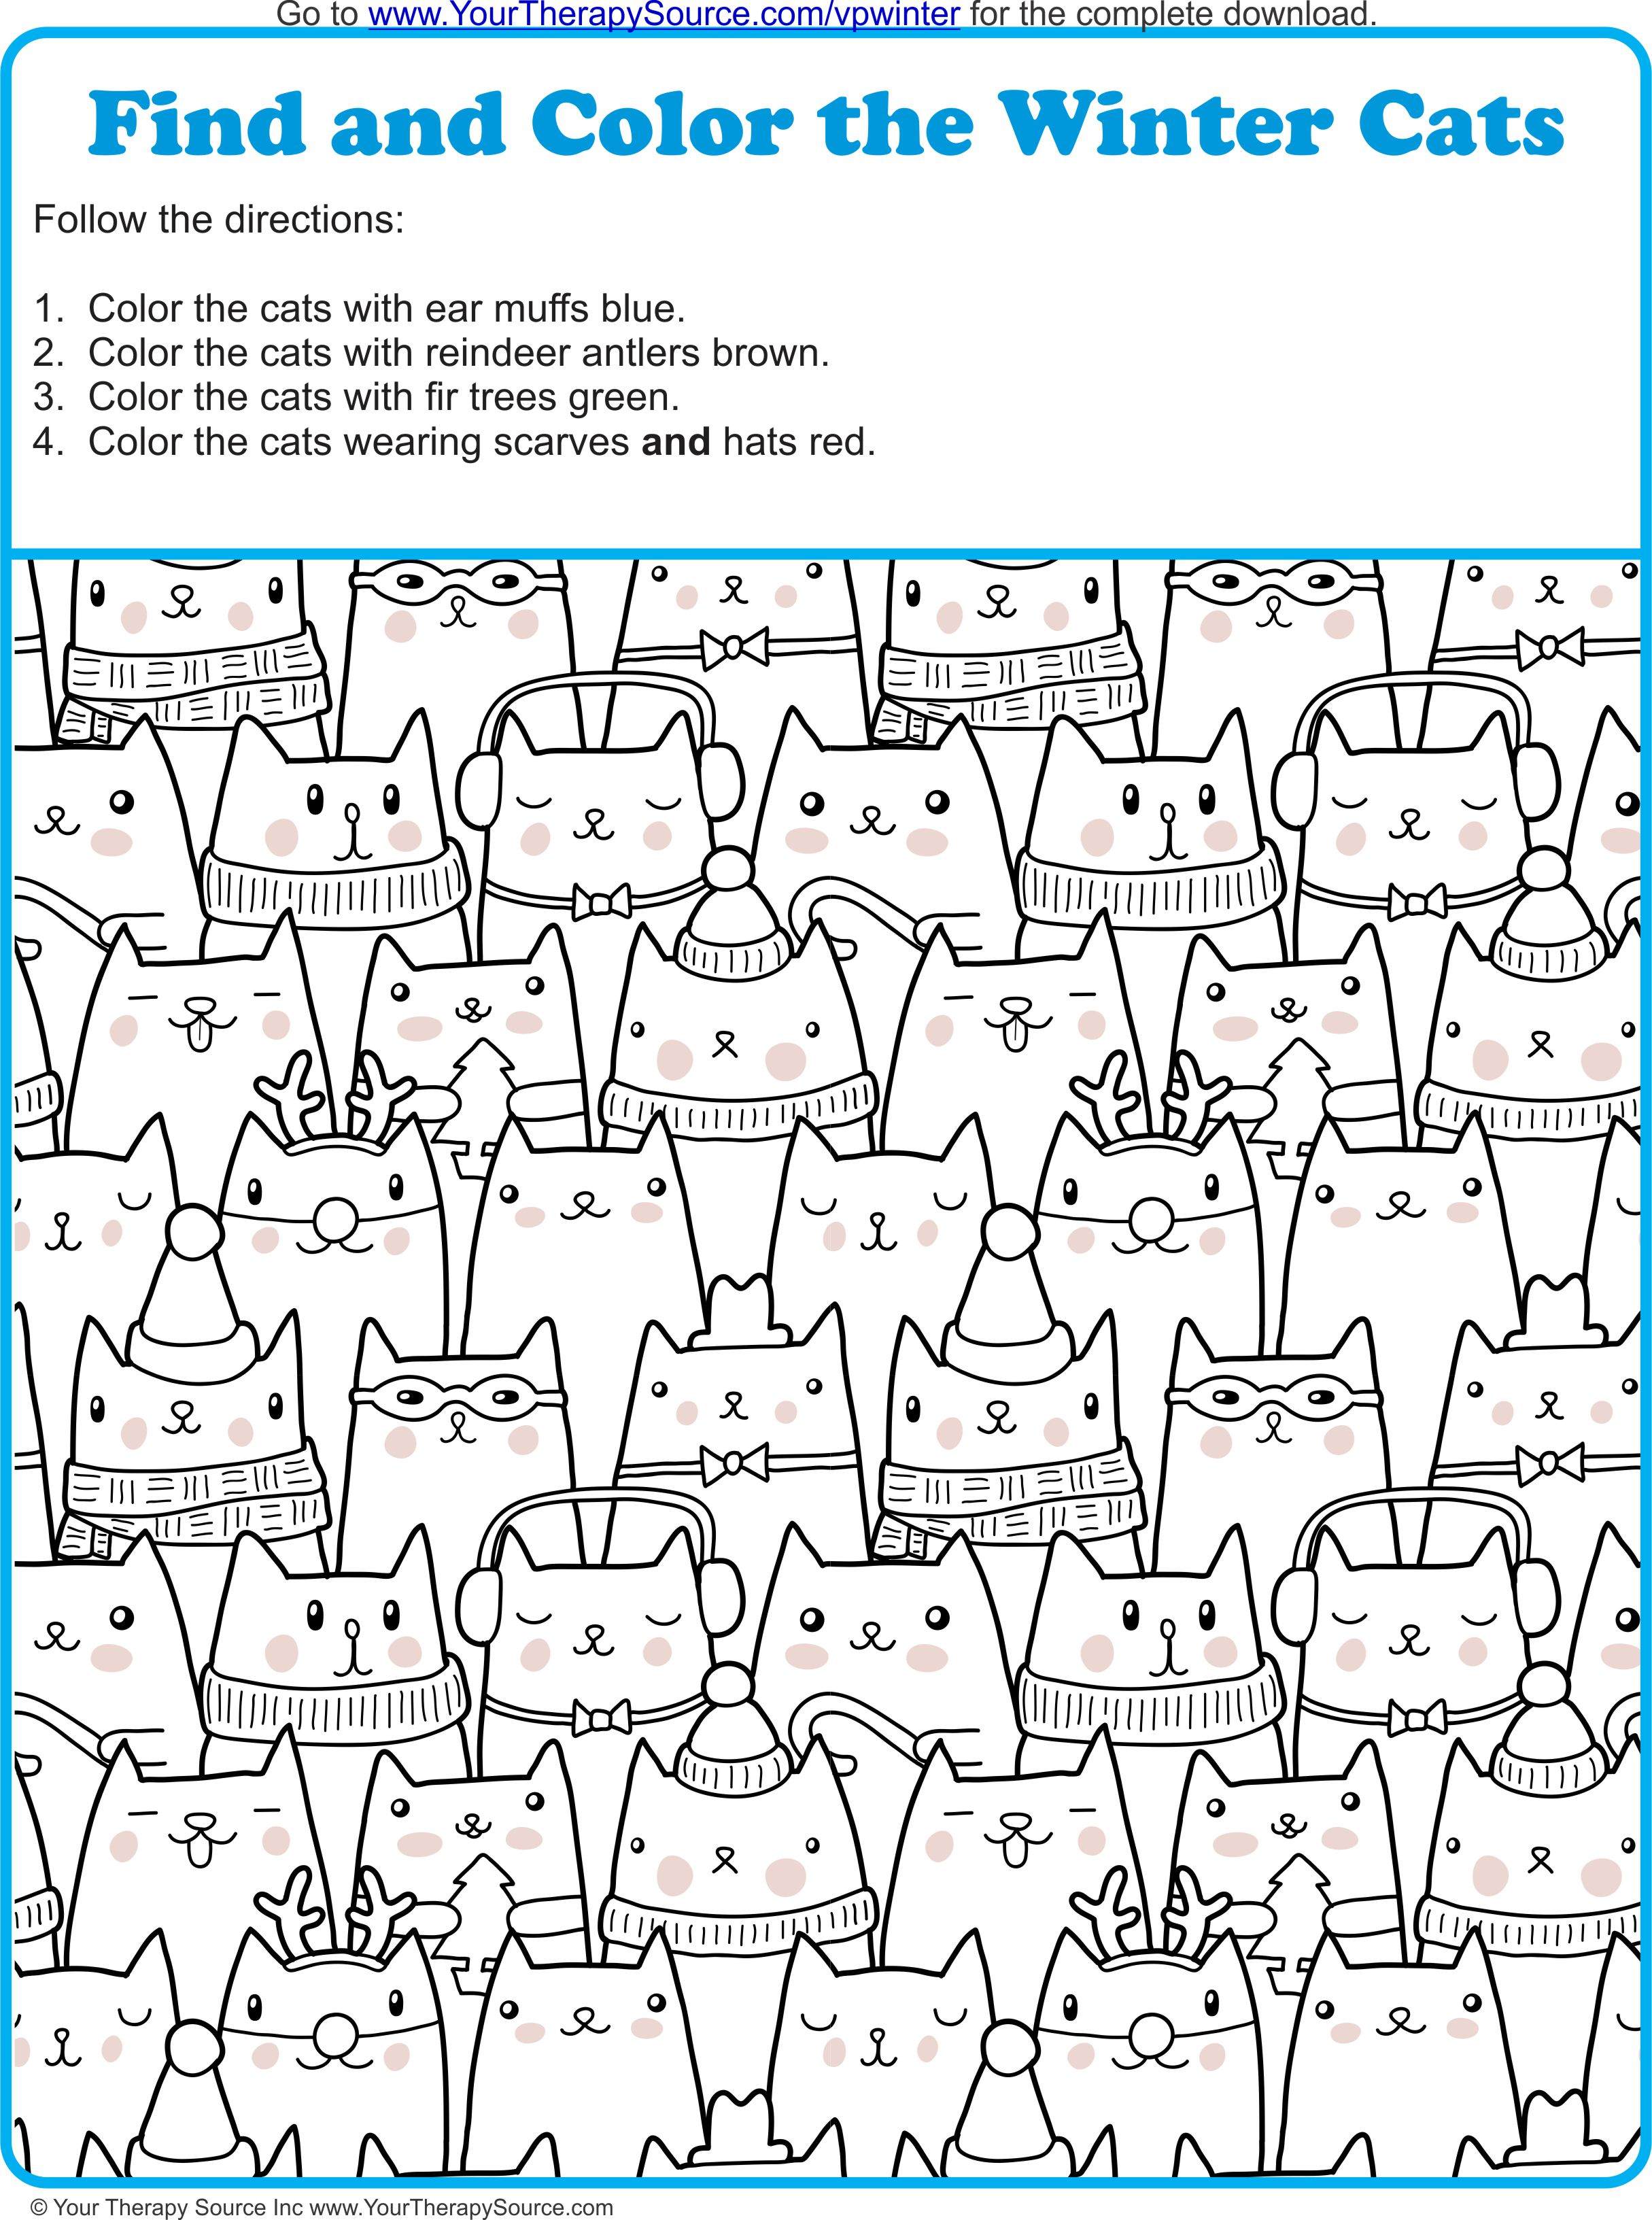 Find And Color The Winter Cats - Your Therapy Source - Free Printable Visual Puzzles